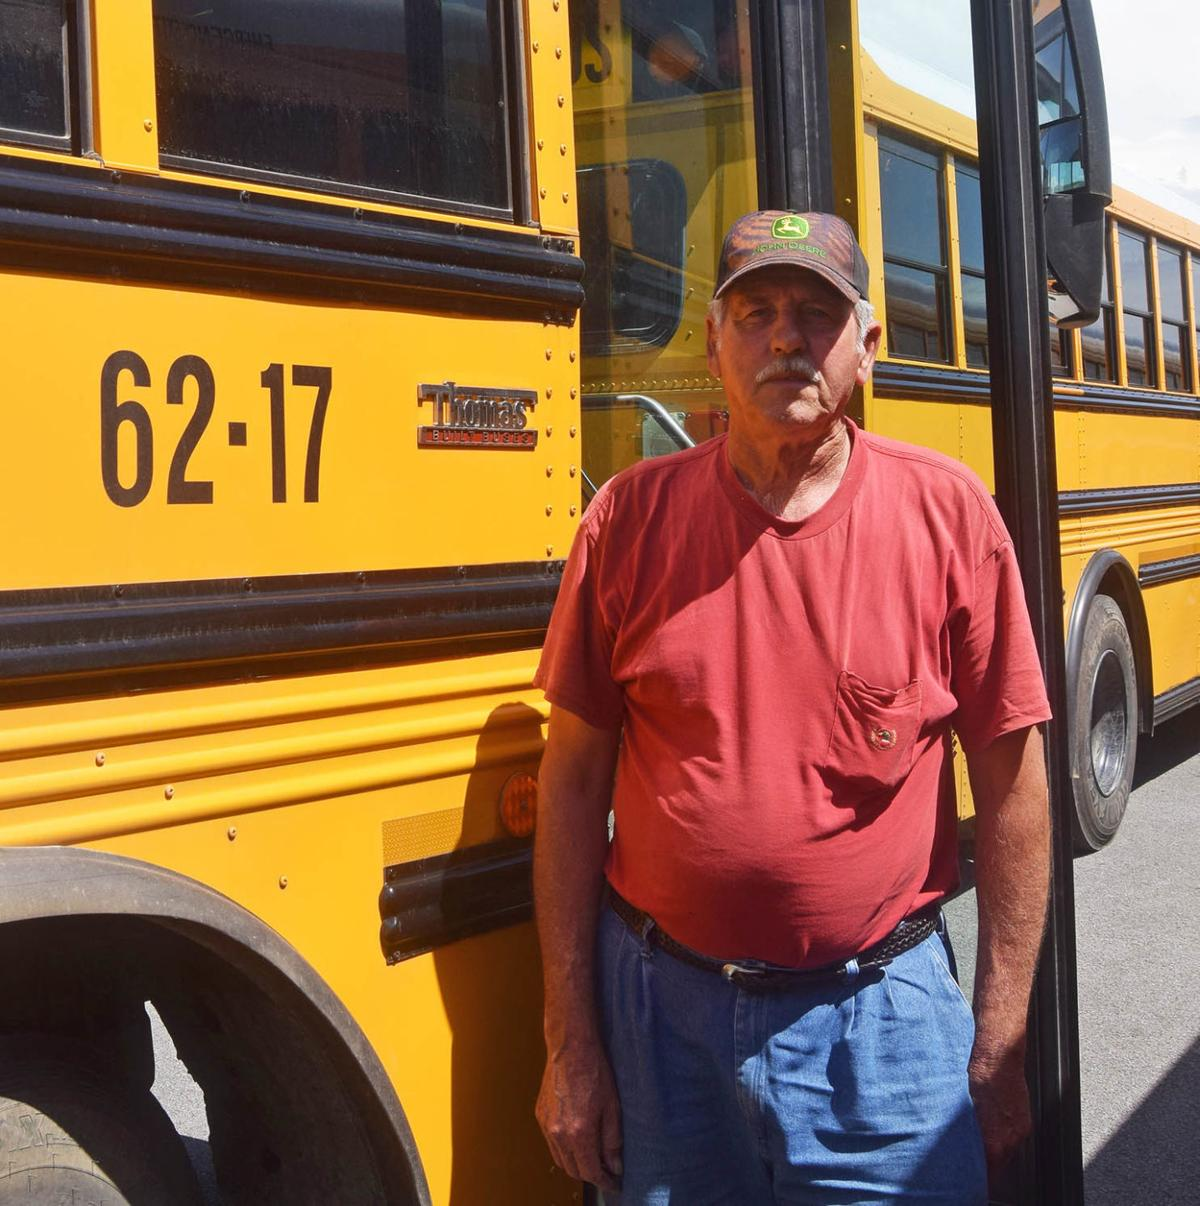 Ronald Blazer retiring after 42 years as county bus driver